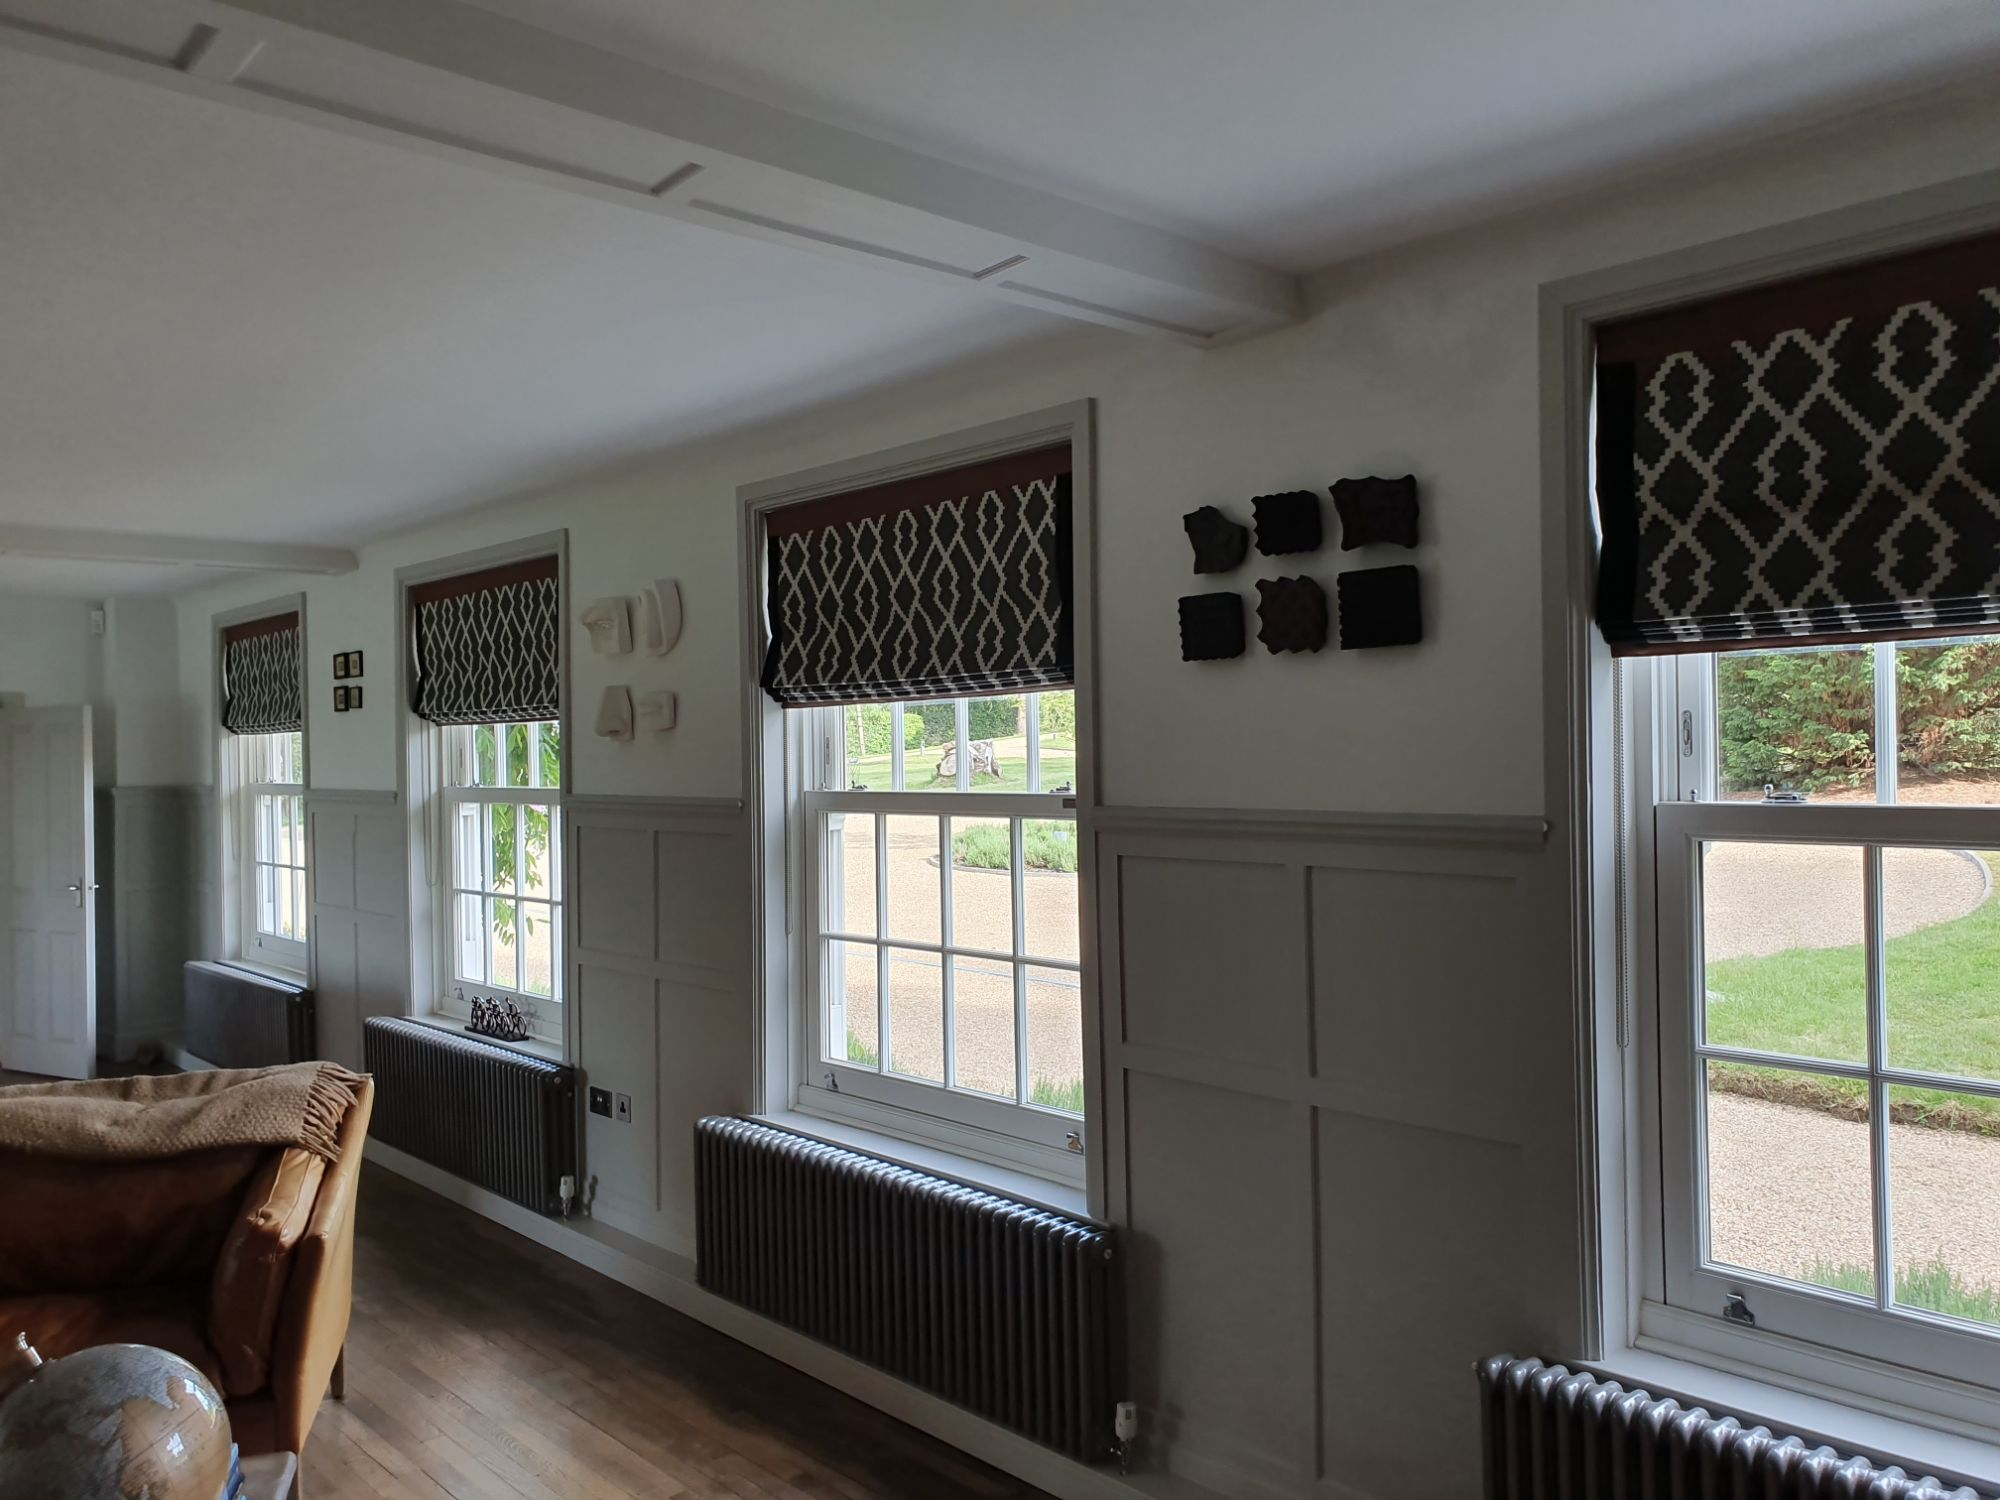 Roman blind sevenoaks leather border with geometrical fabric